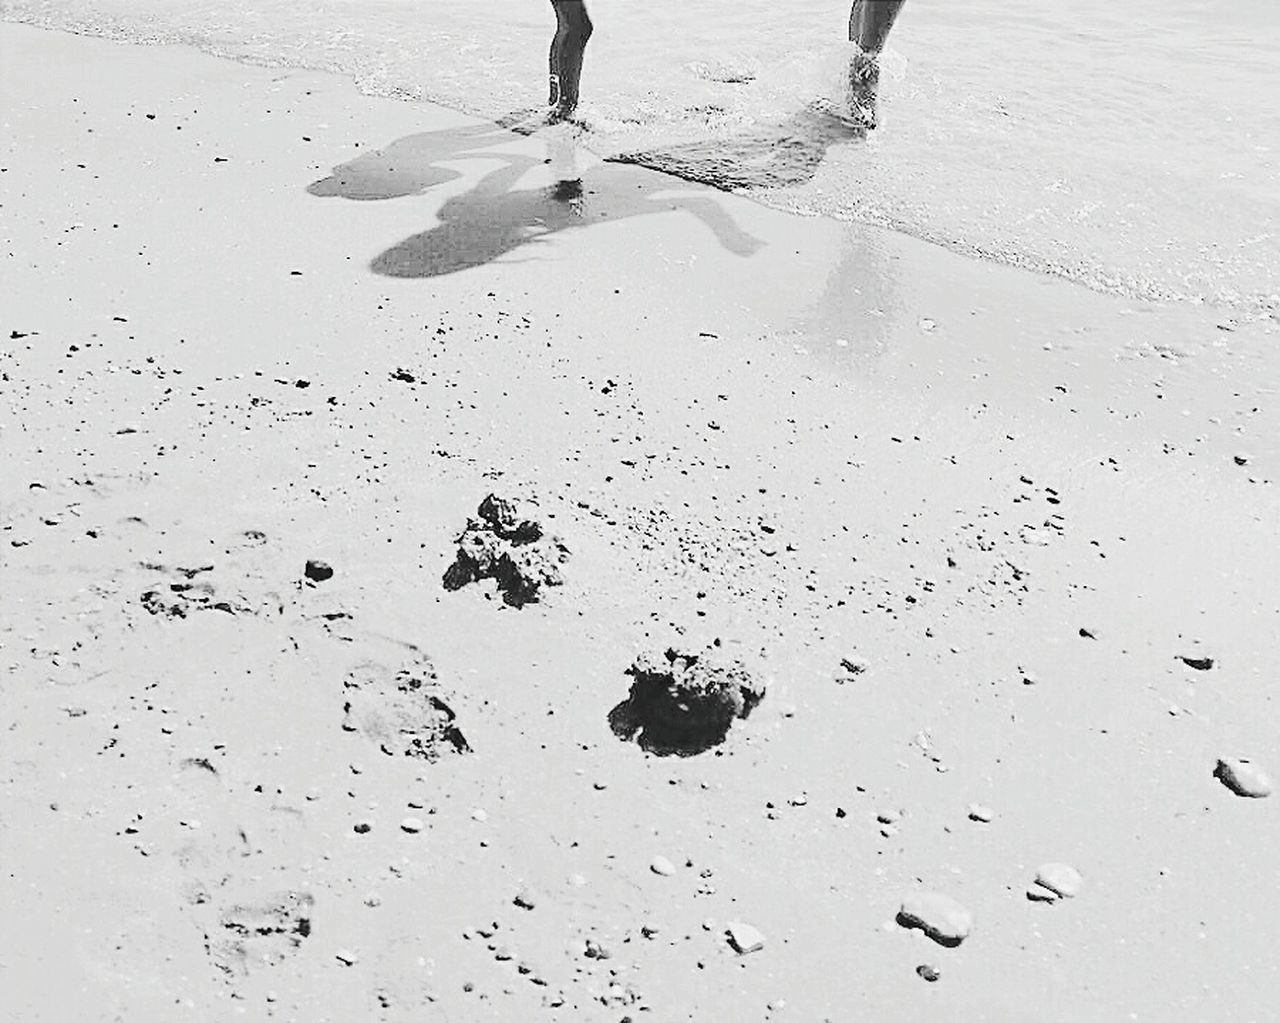 Beach Sand Nature People Blackandwhite Littlesister